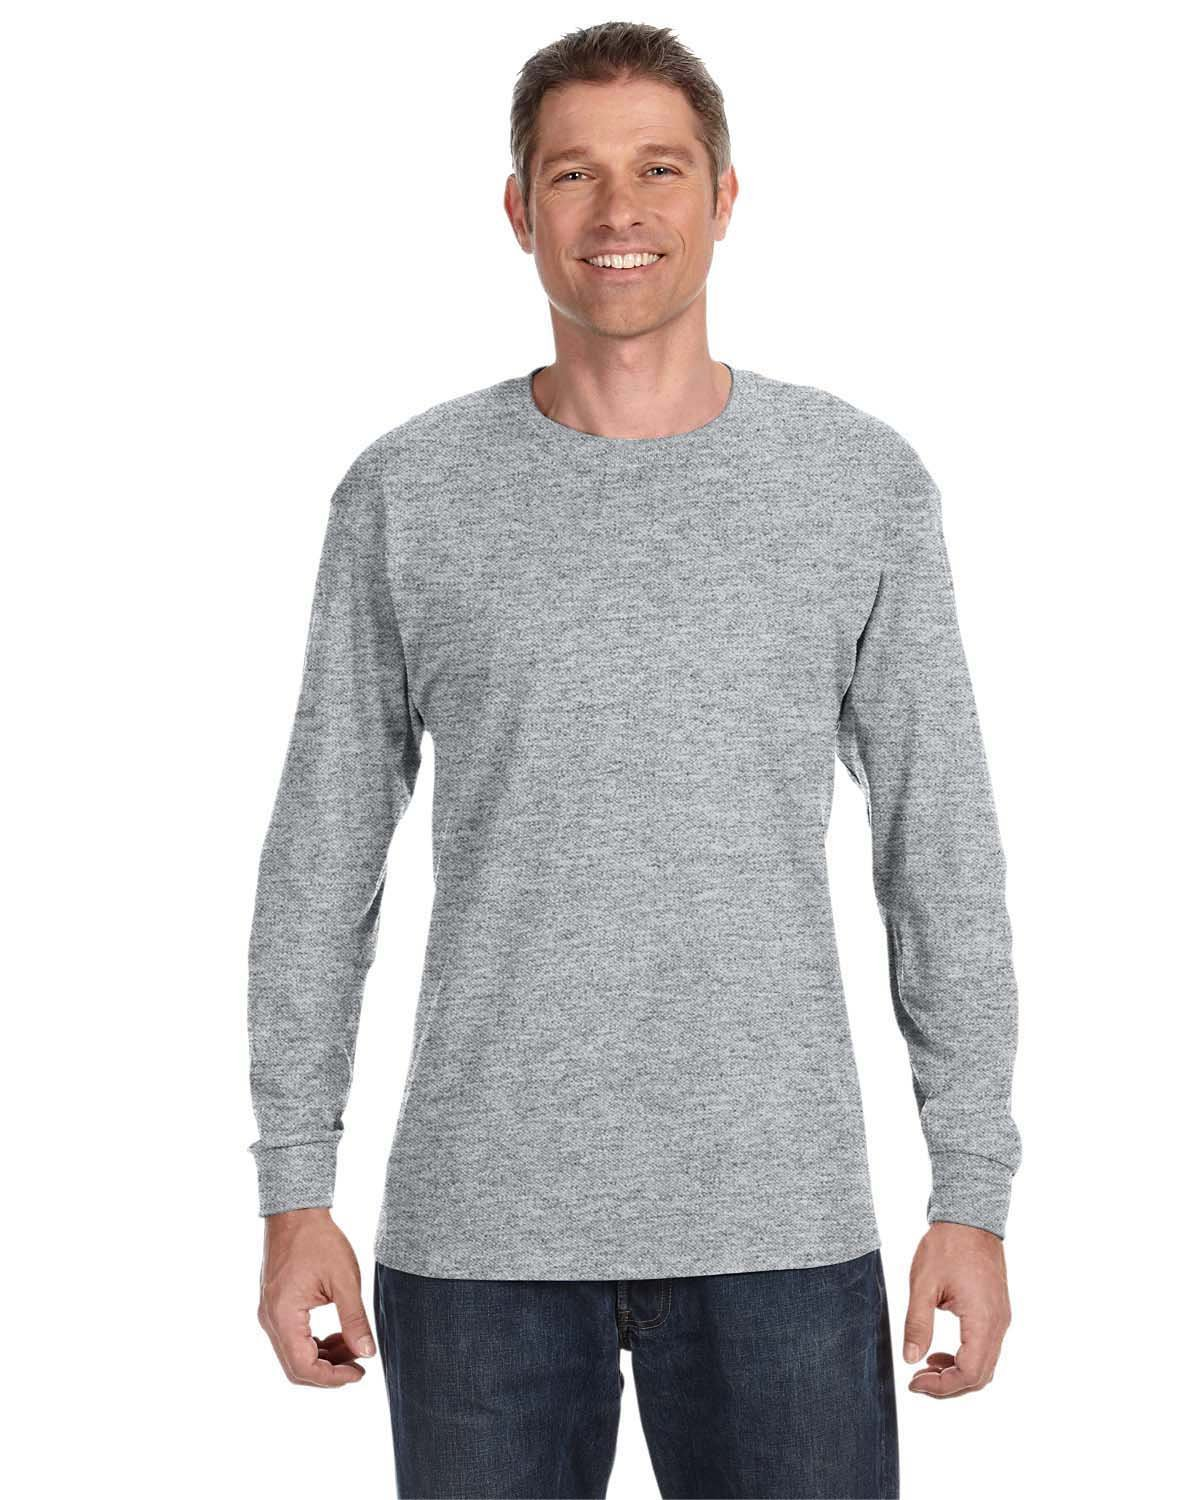 Jerzees Adult DRI-POWER® ACTIVE Long-Sleeve T-Shirt ATHLETIC HEATHER